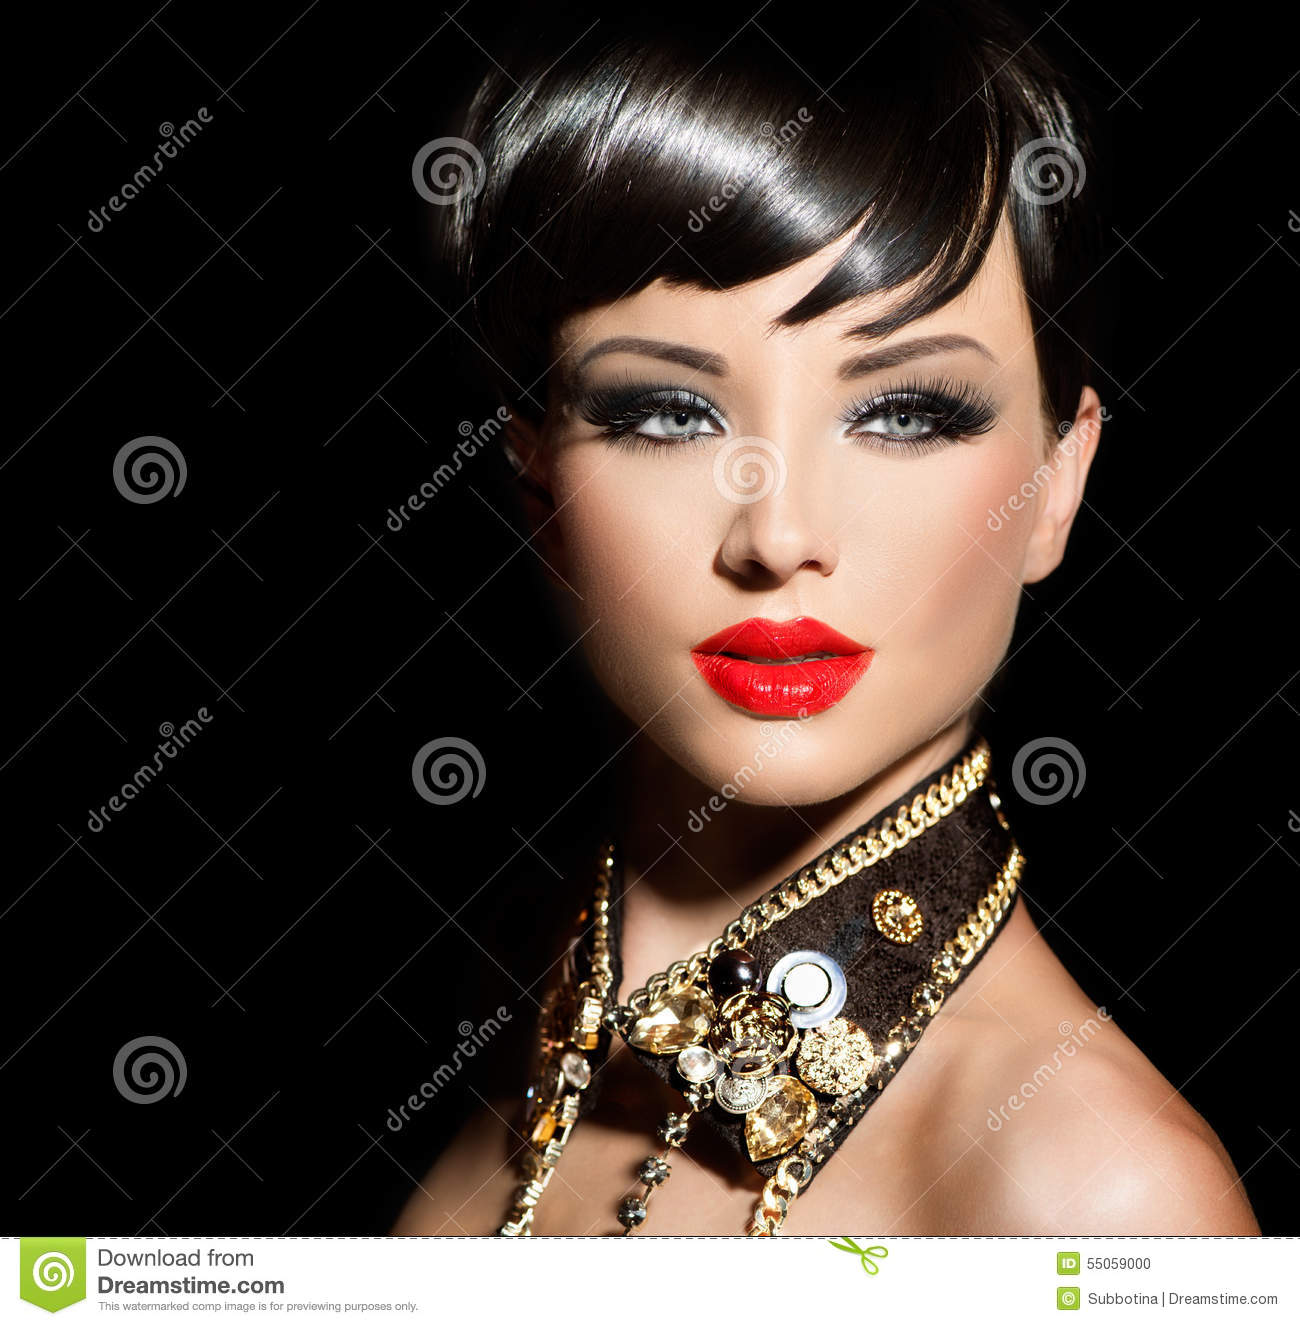 Beauty Fashion Model Girl With Short Hair Stock Photo